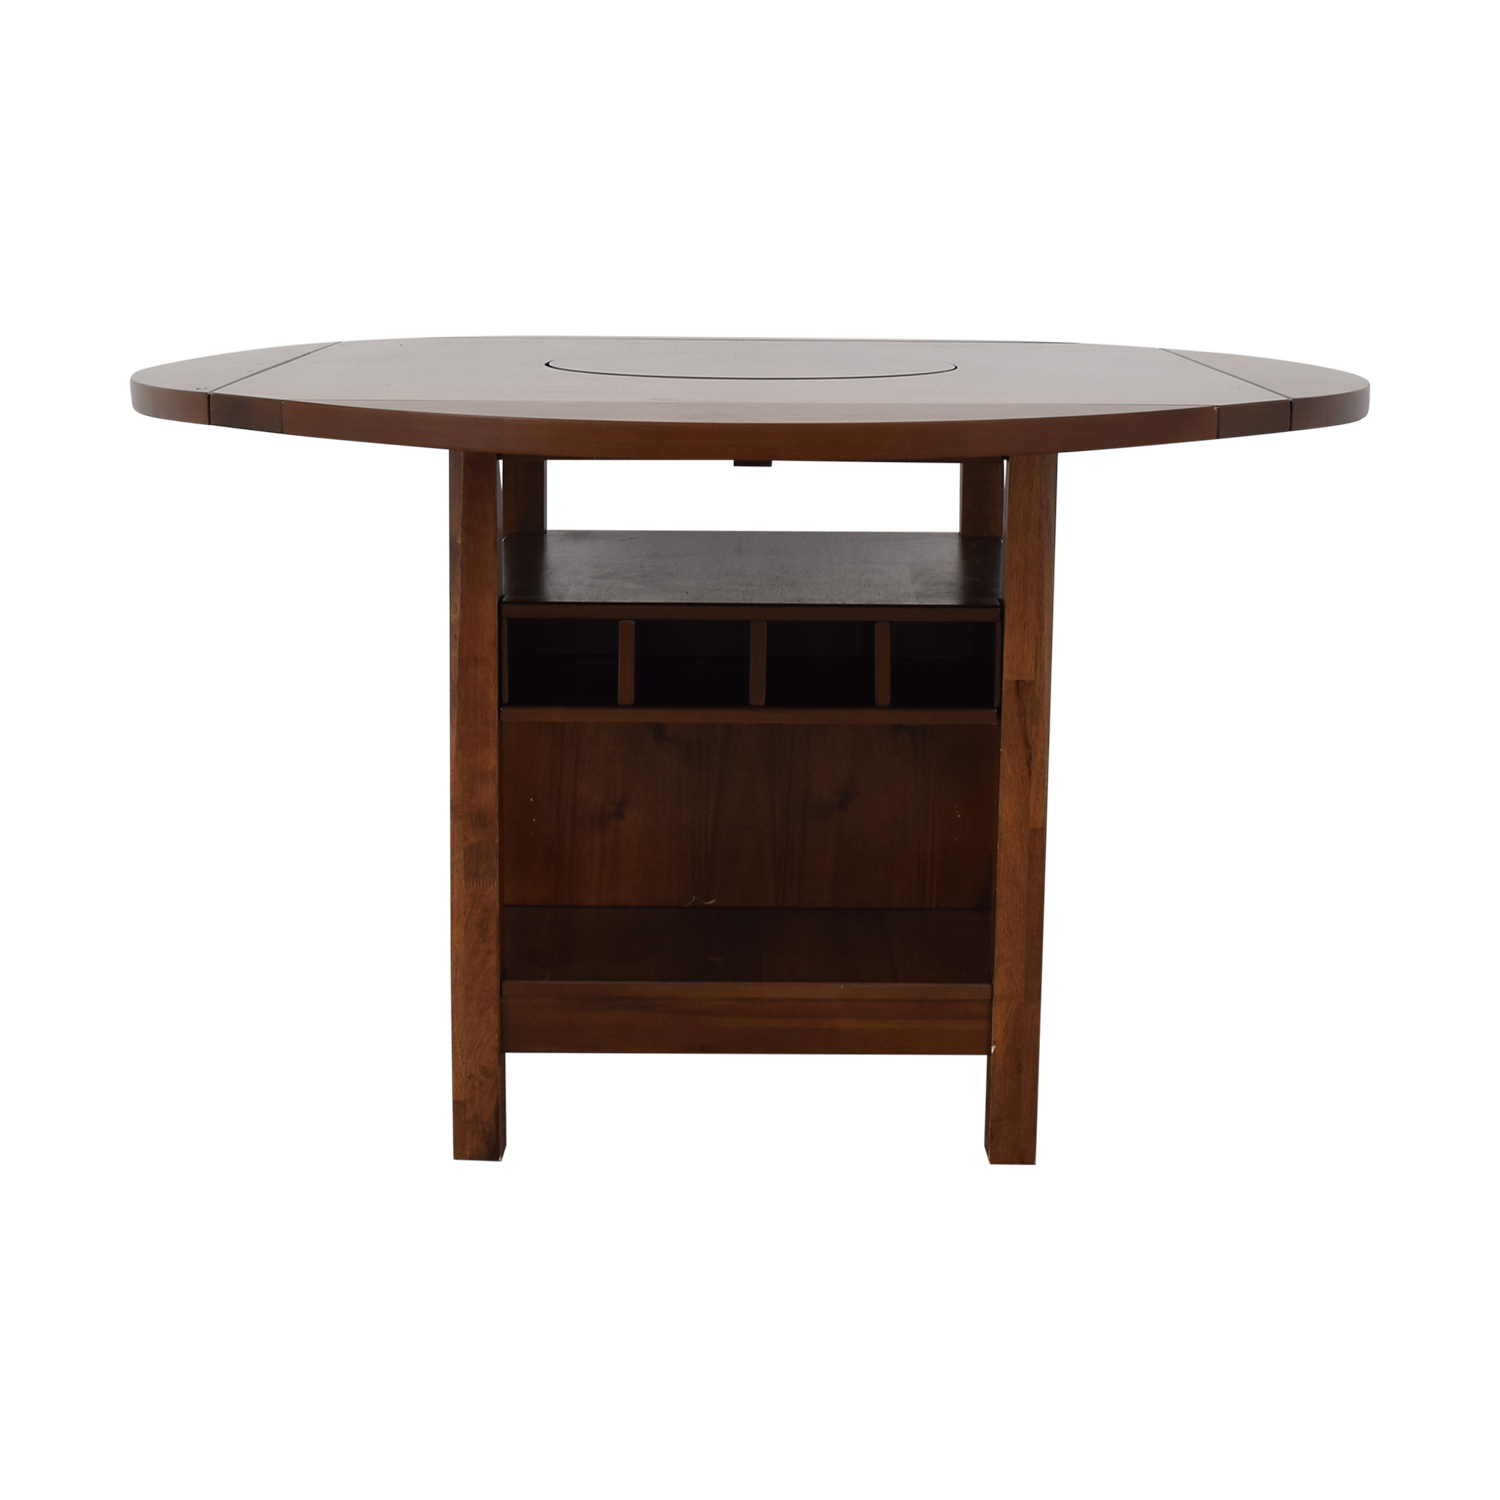 CrownMark Furniture CrownMark Conner Counter Height Table with Wine Storage for sale